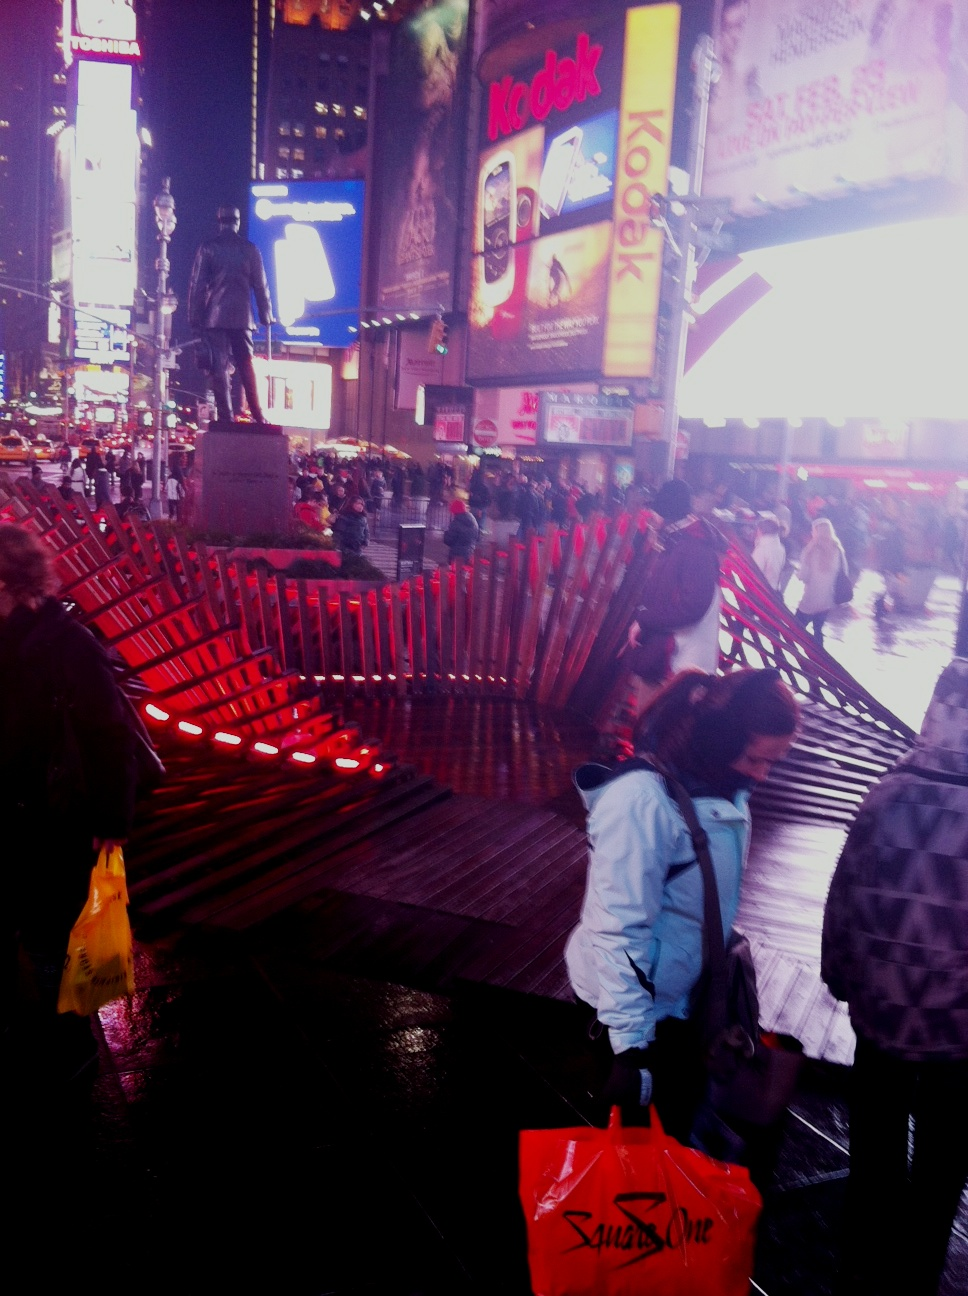 """Heartwalk"" in Times Square, the Sculpture was Designed by Situ Studio, it Includes New York and New Jersey Boardwalk Boards Salvaged from the Aftermath of Hurricane Sandy (2013)"